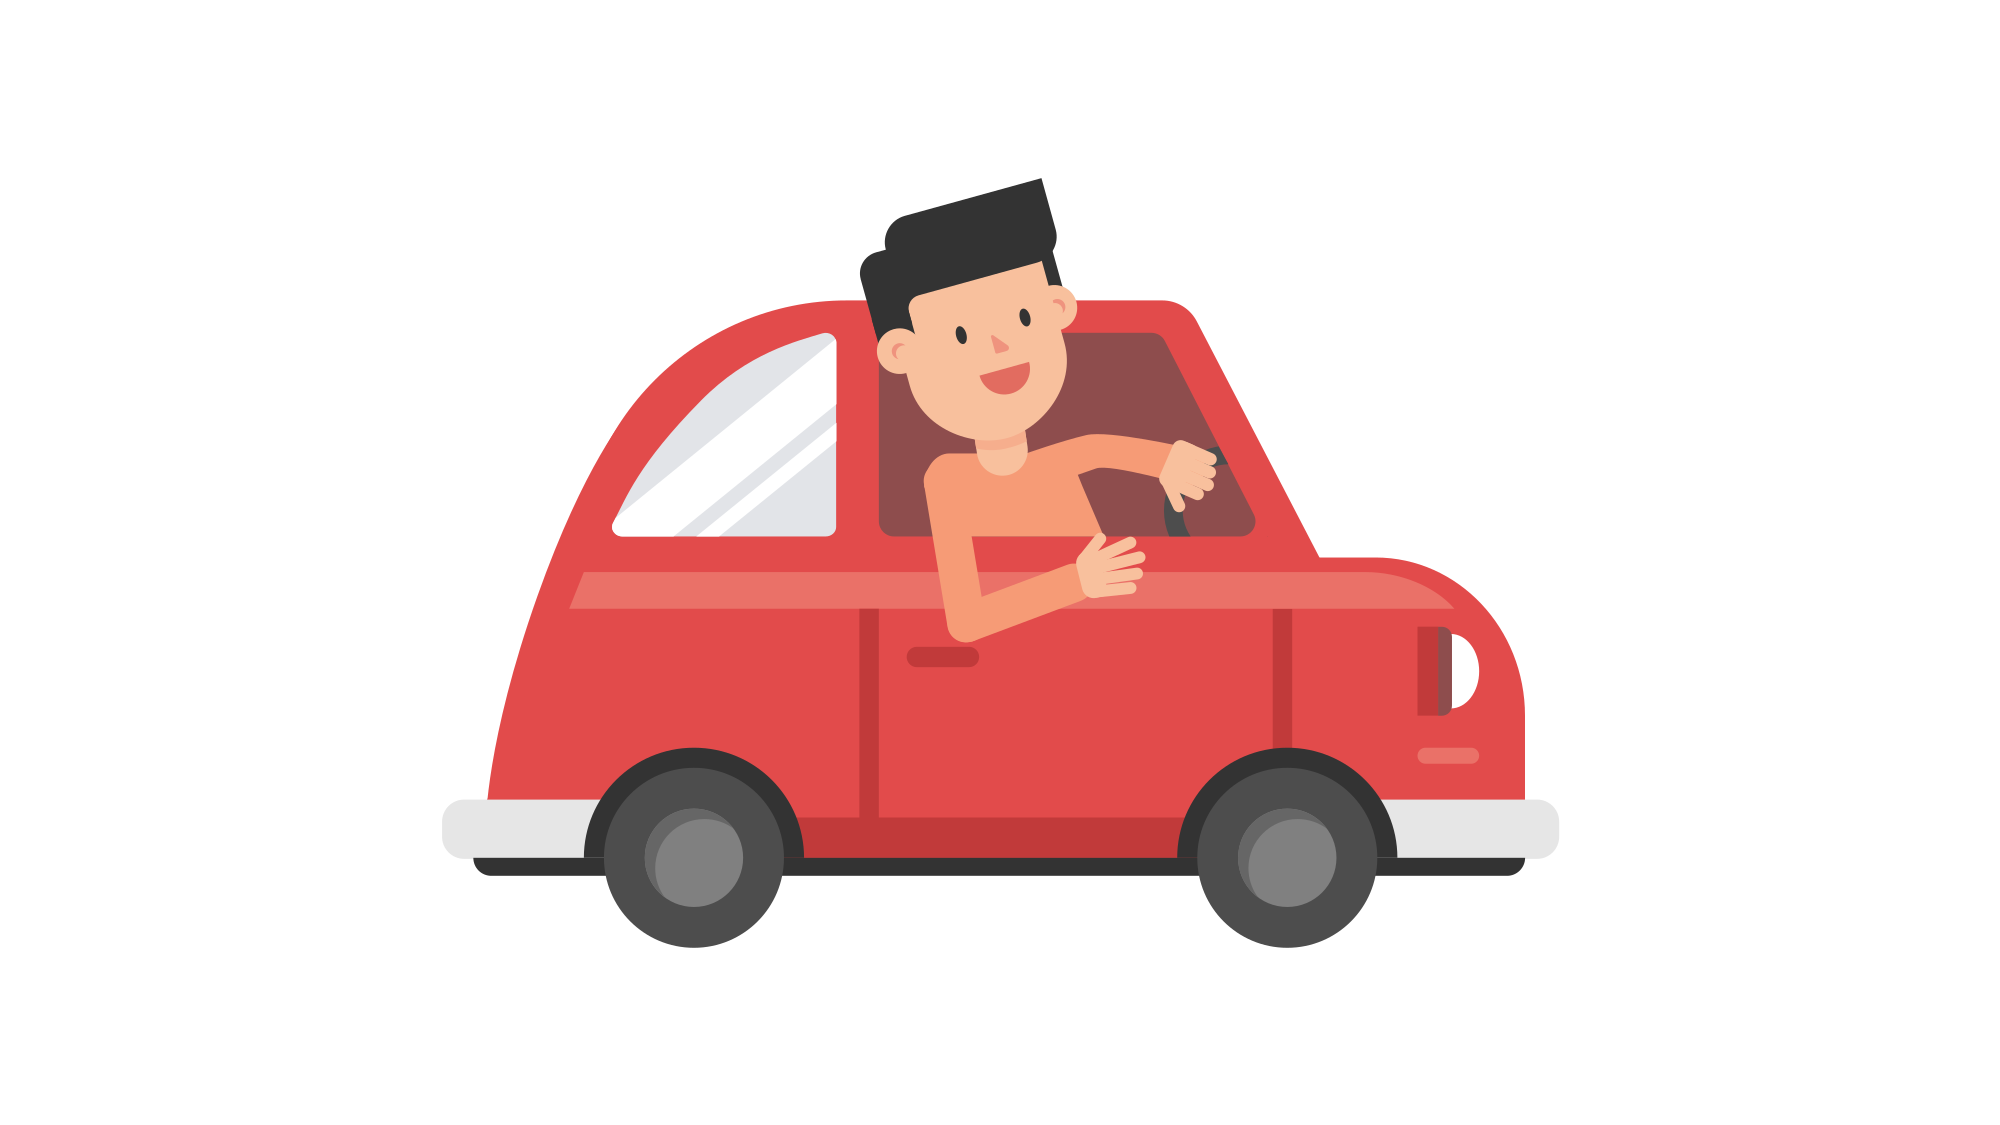 Girl driving car clipart banner transparent library PNG Driving Transparent Driving.PNG Images. | PlusPNG banner transparent library